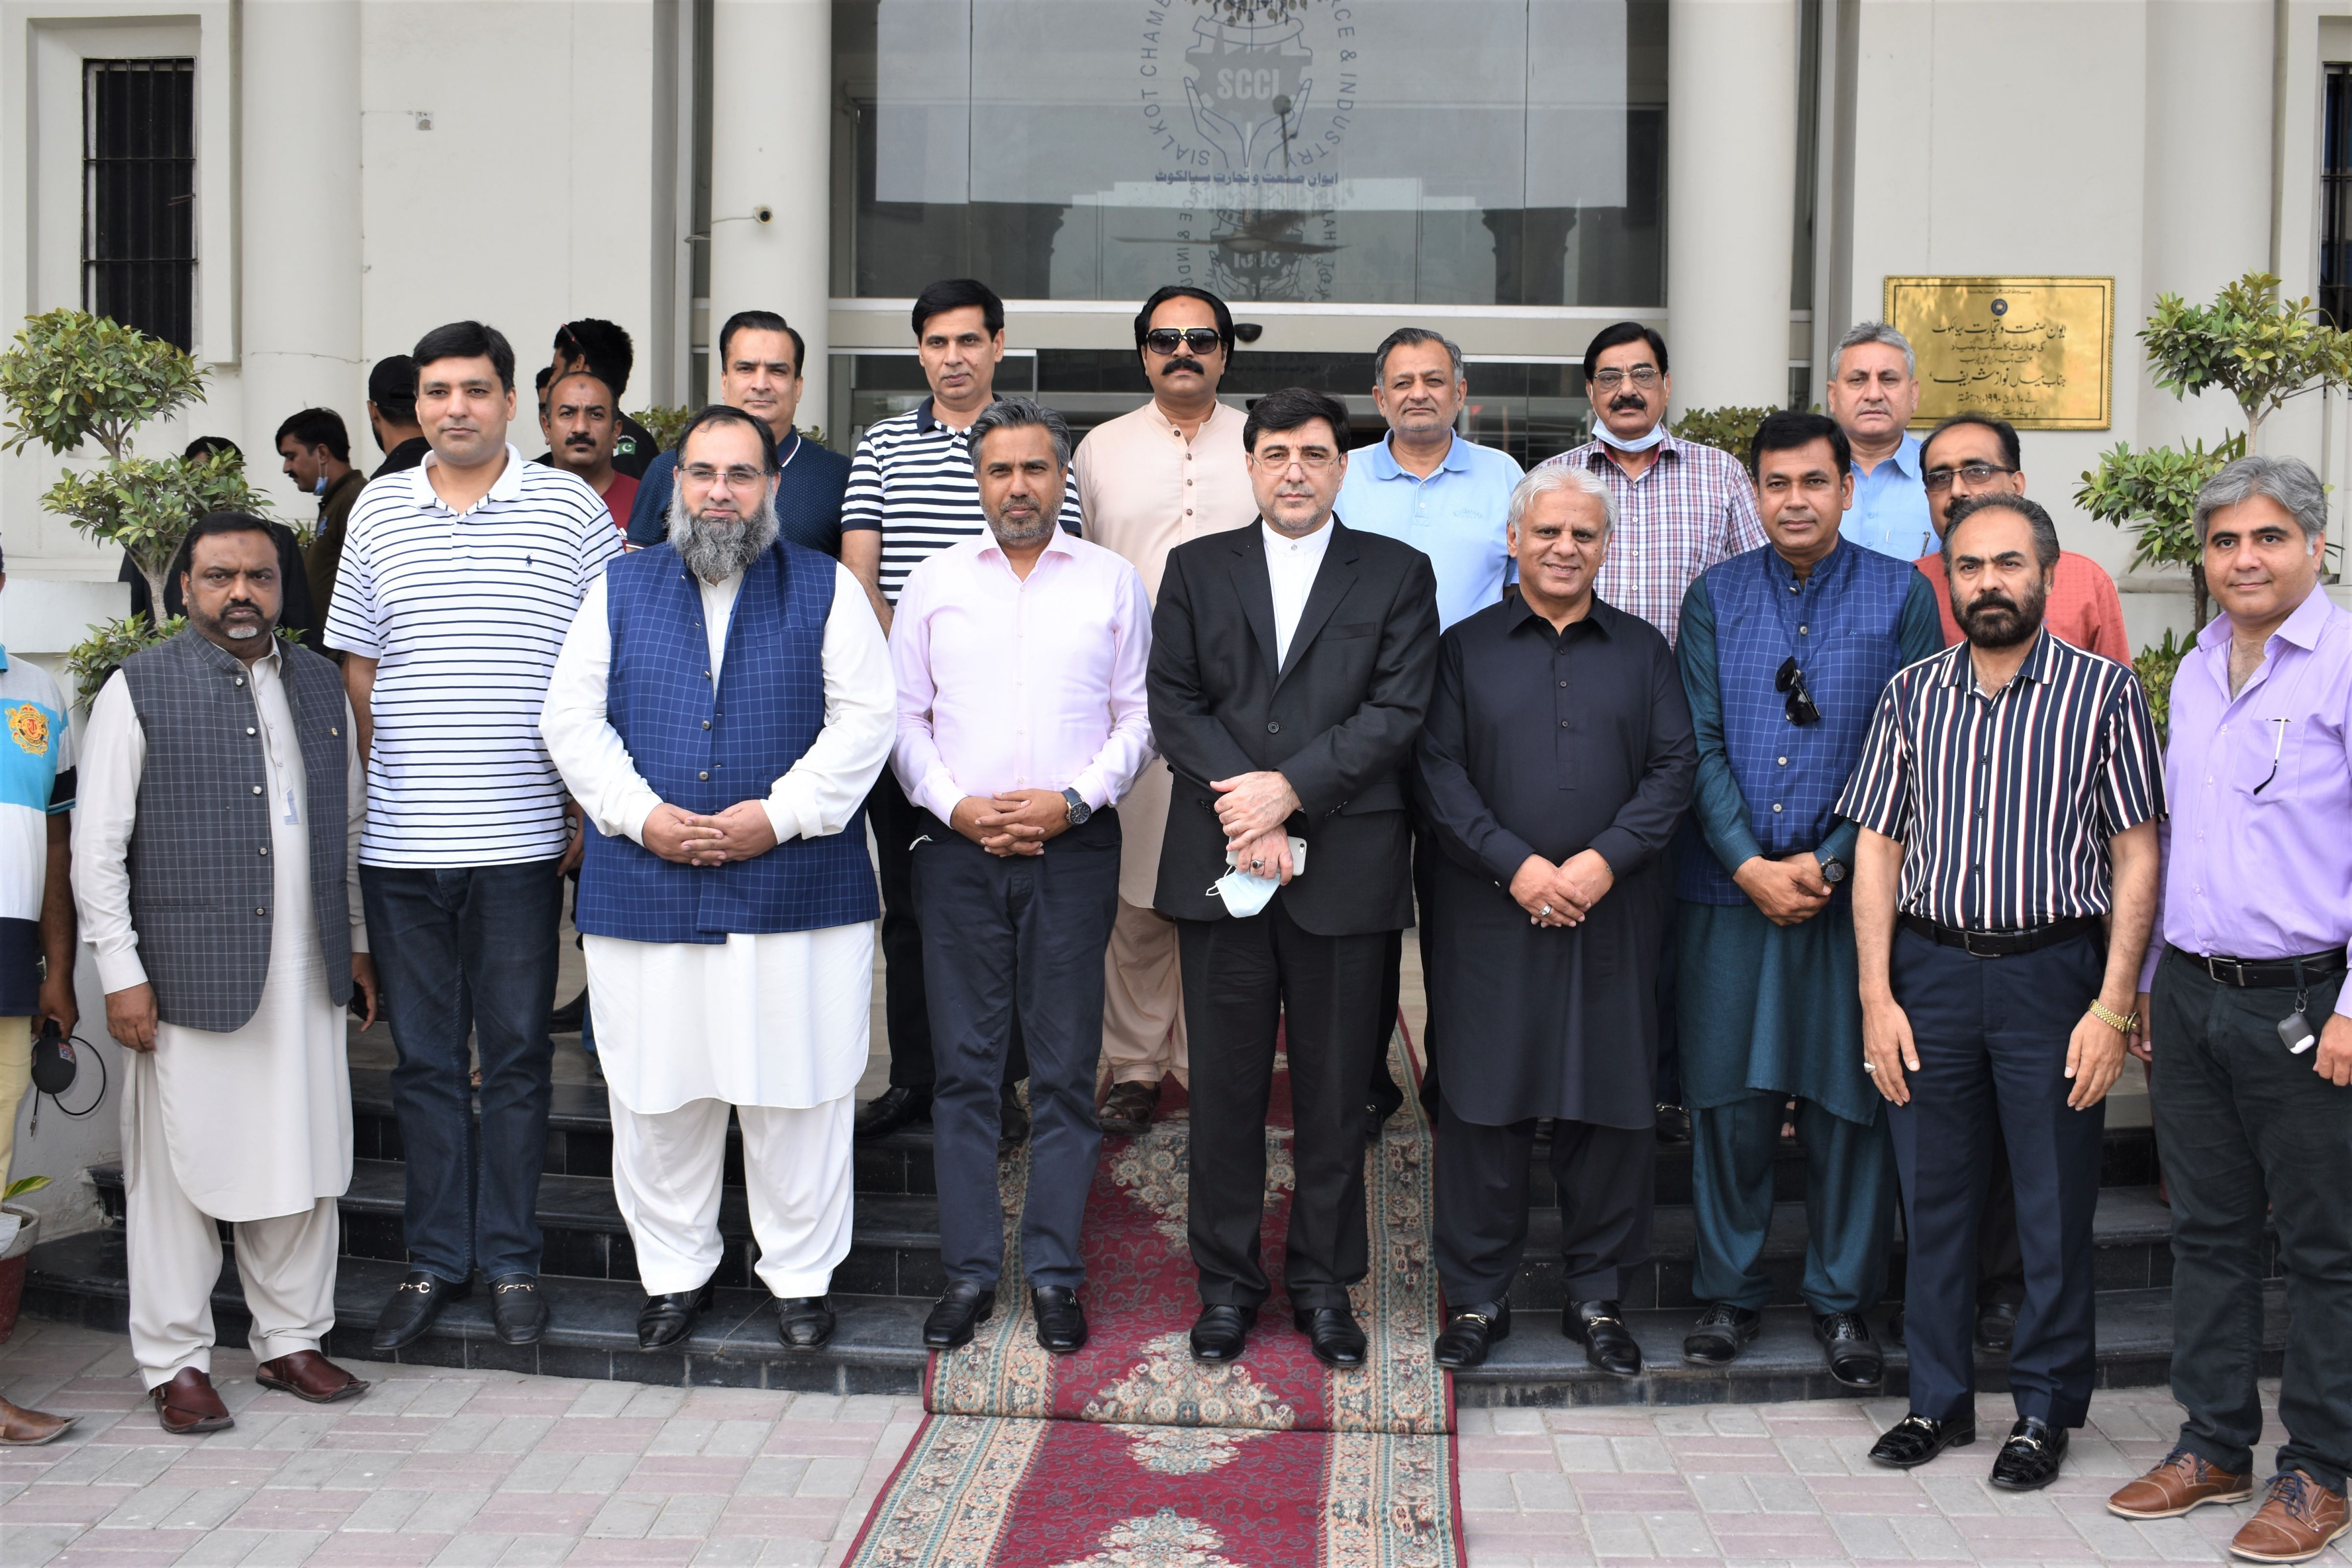 On September 02, 2021, H.E. Mohammad Reza Nezari, Consulate General of Iran in Lahore, Pakistan honored a visit to Sialkot Chamber of Commerce & Industry.    Mr. Khuram Aslam, Senior Vice President, Mr. Ansar Aziz Puri, Vice President and Executive Committee Members of SCCI warmly welcomed his excellency. During the session, various windows of opportunities were explored especially B2B Linkages between the two brotherly Islamic Countries sharing religious, cultural, and socio-political heritage.  Mr. Qaisar Iqbal Baryar, President, Sialkot Chamber of Commerce highlighted the necessary yet practical measures to effectively promote bilateral trade utilizing various functional channels between the two countries for mutually beneficial long-term business relations.